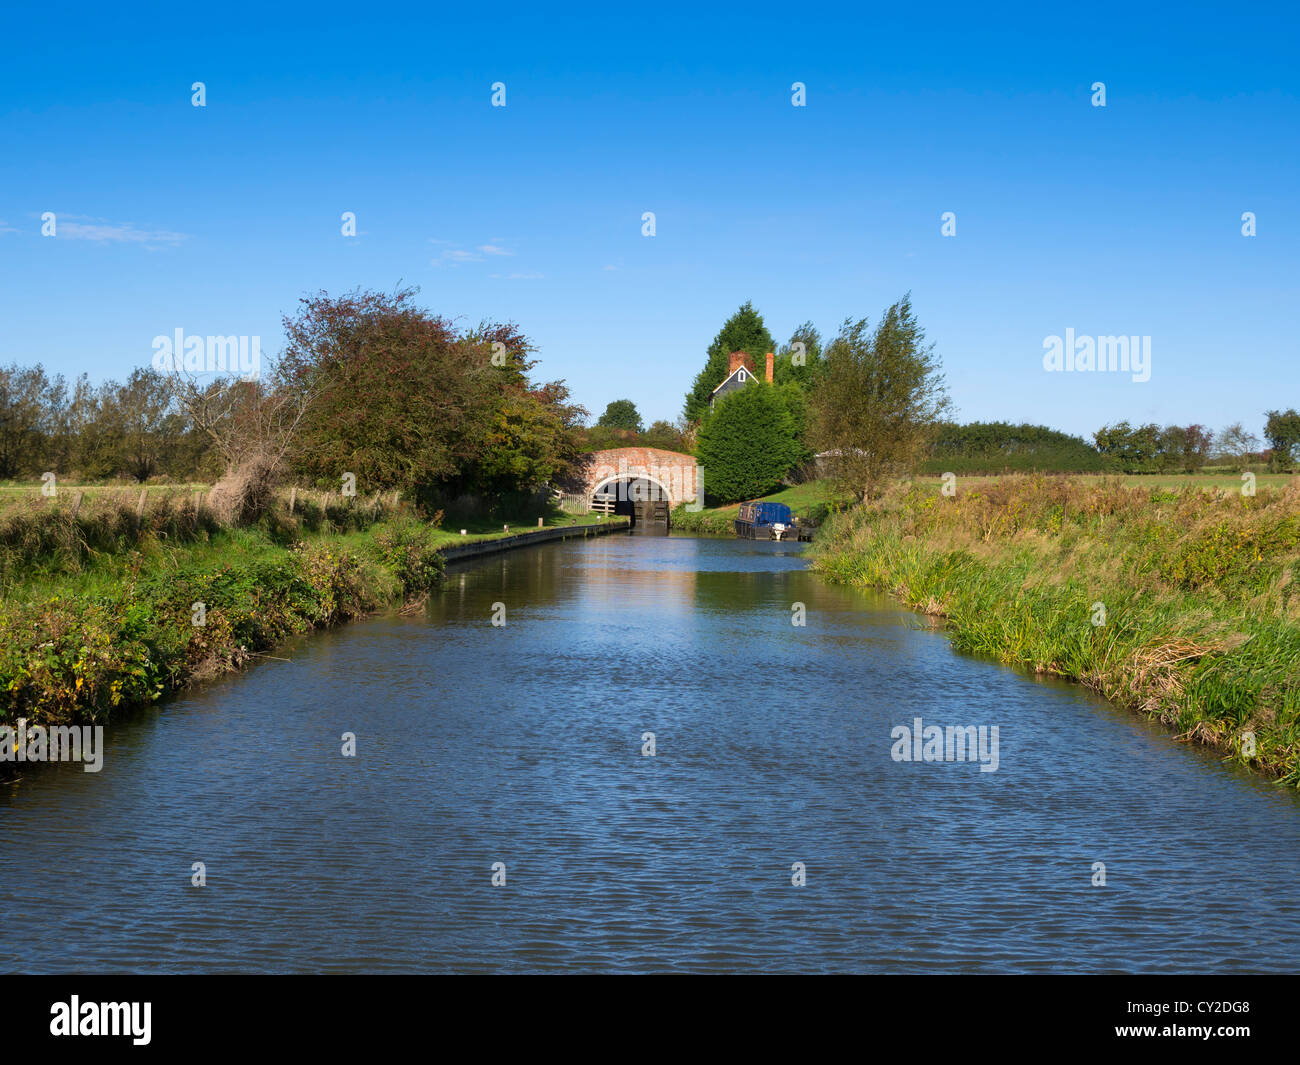 Bridge 194 and Somerton Deep Lock on the Oxford Union Canal above Somerton, Oxfordshire. - Stock Image